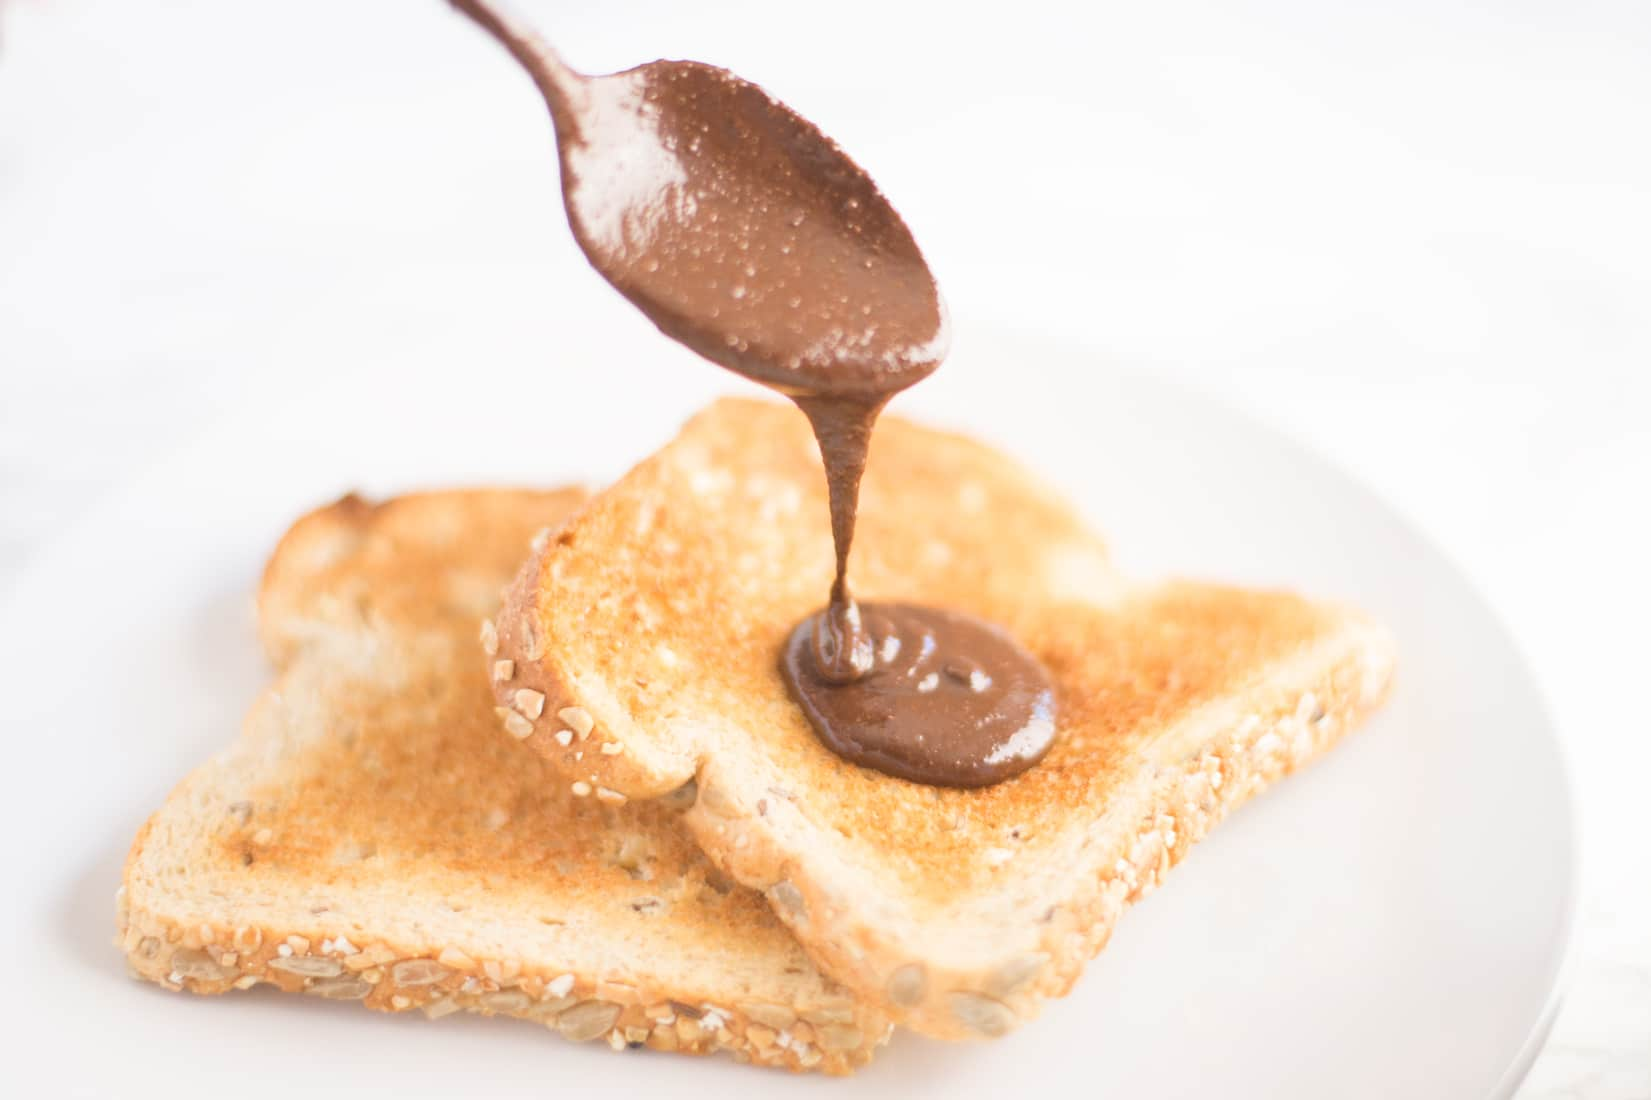 Homemade Vegan Nutella -- Try this homemade vegan Nutella with only 5 ingredients for a healthier sweet spread! - mindfulavocado